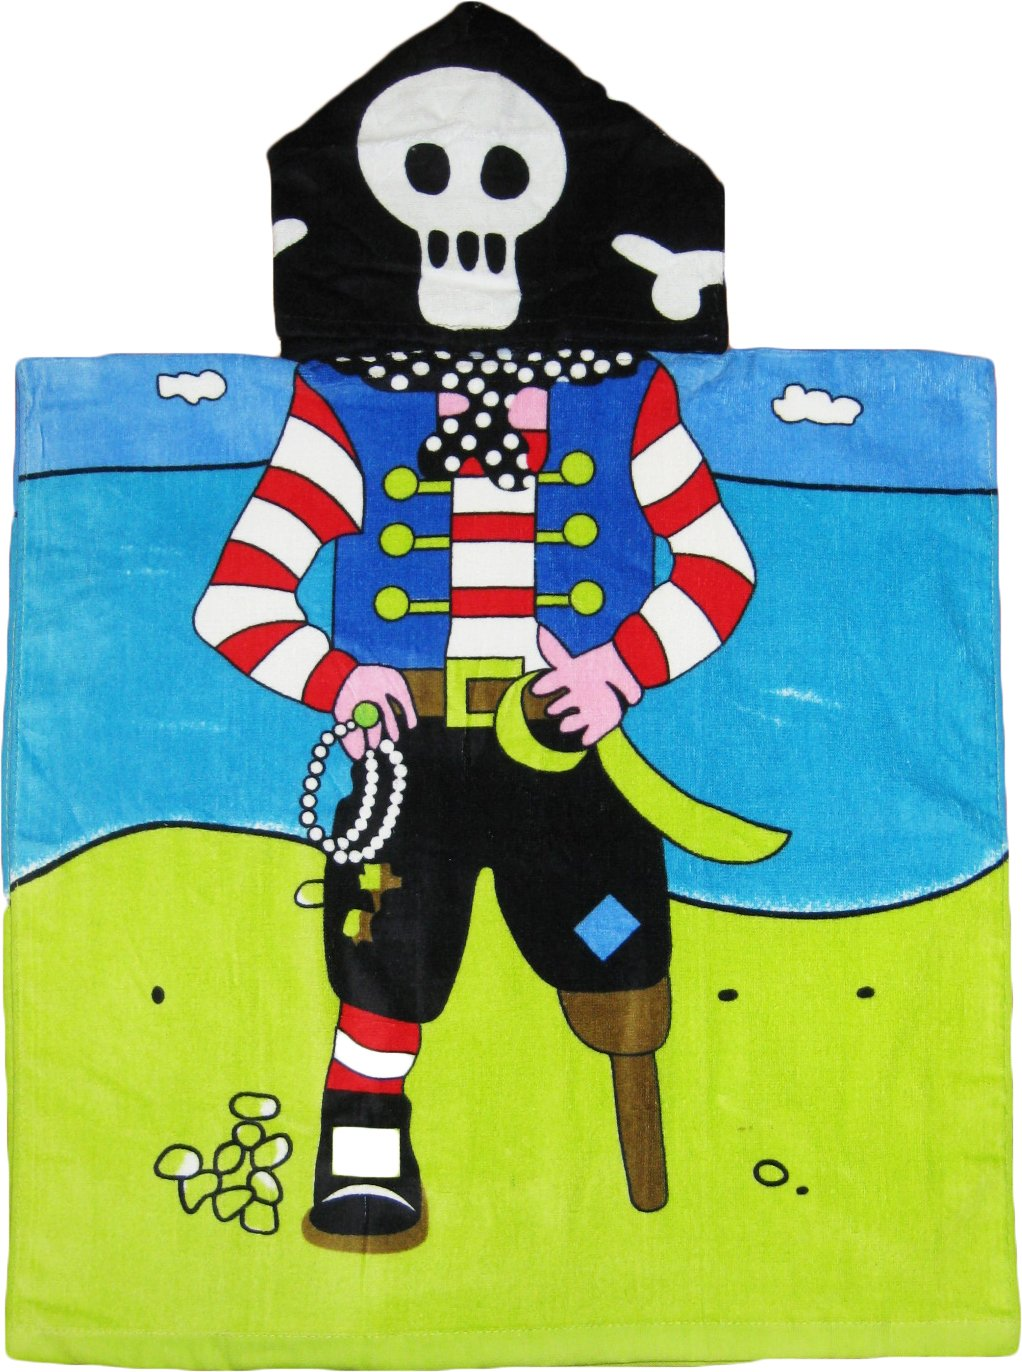 Pirate 100% Cotton Poncho Style Hooded Bath & Beach Towel with Colorful Double Sized Design